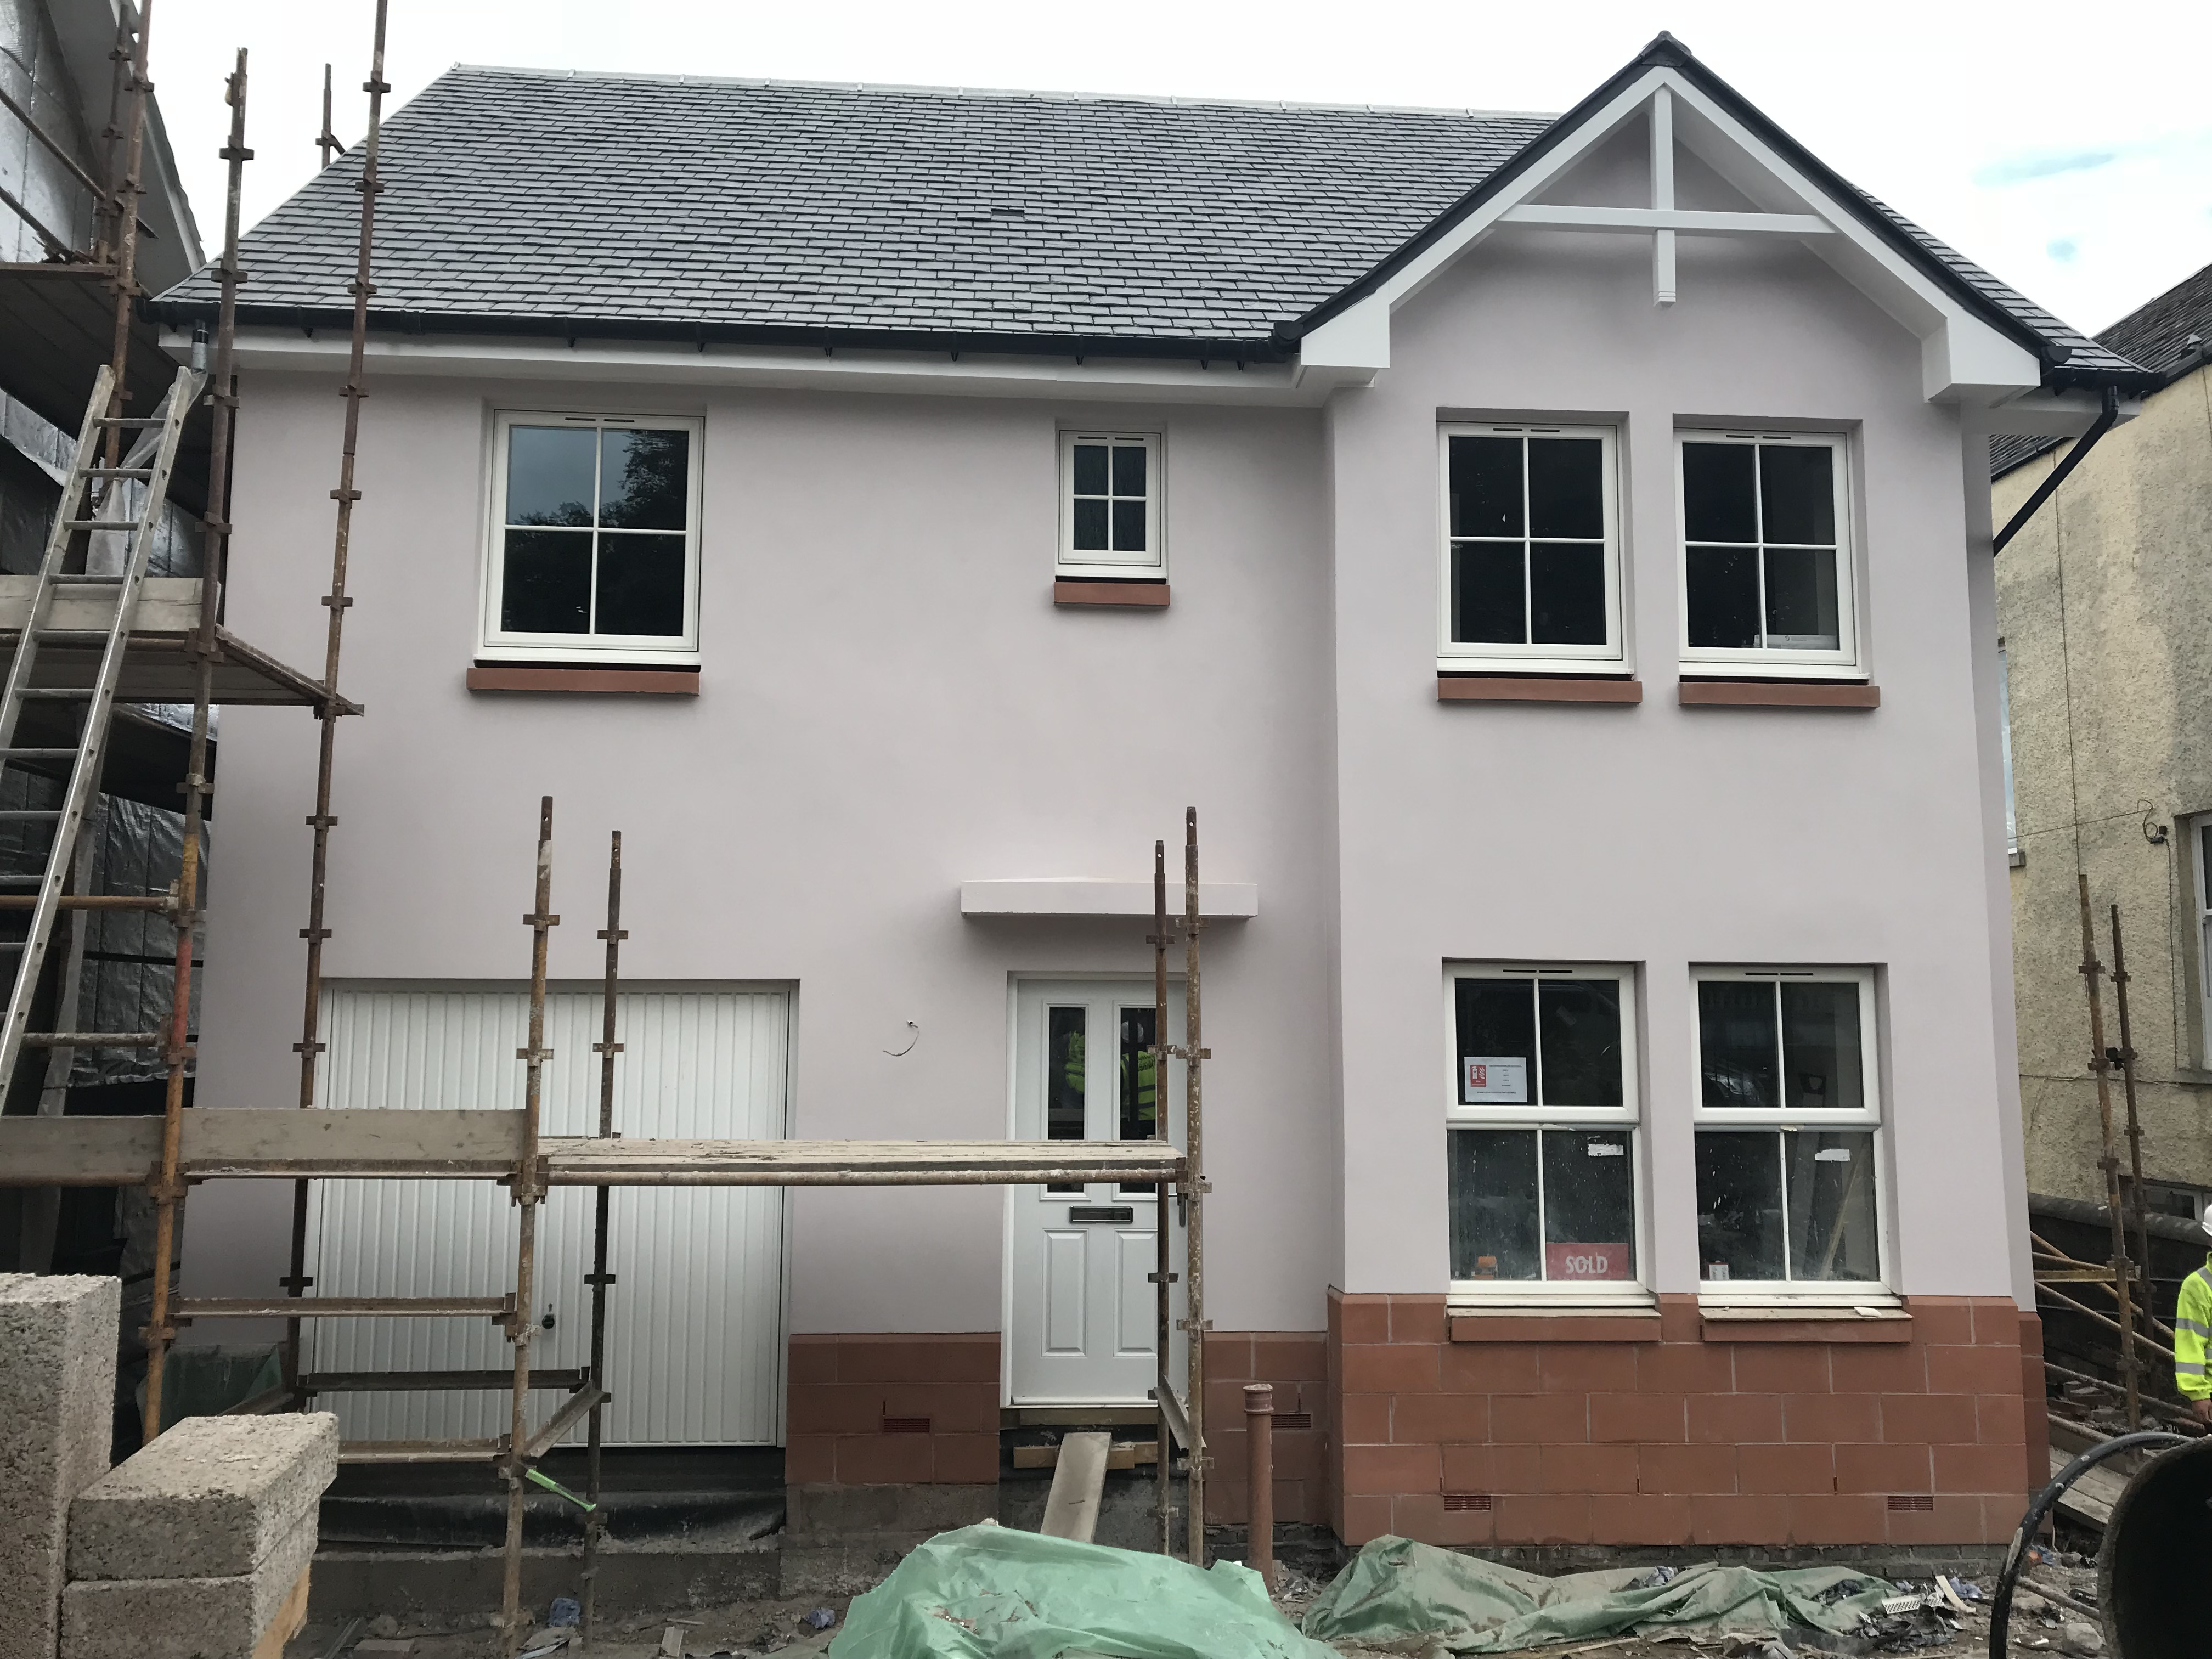 FINAL 4 BED DETACHED HOME REMAINING